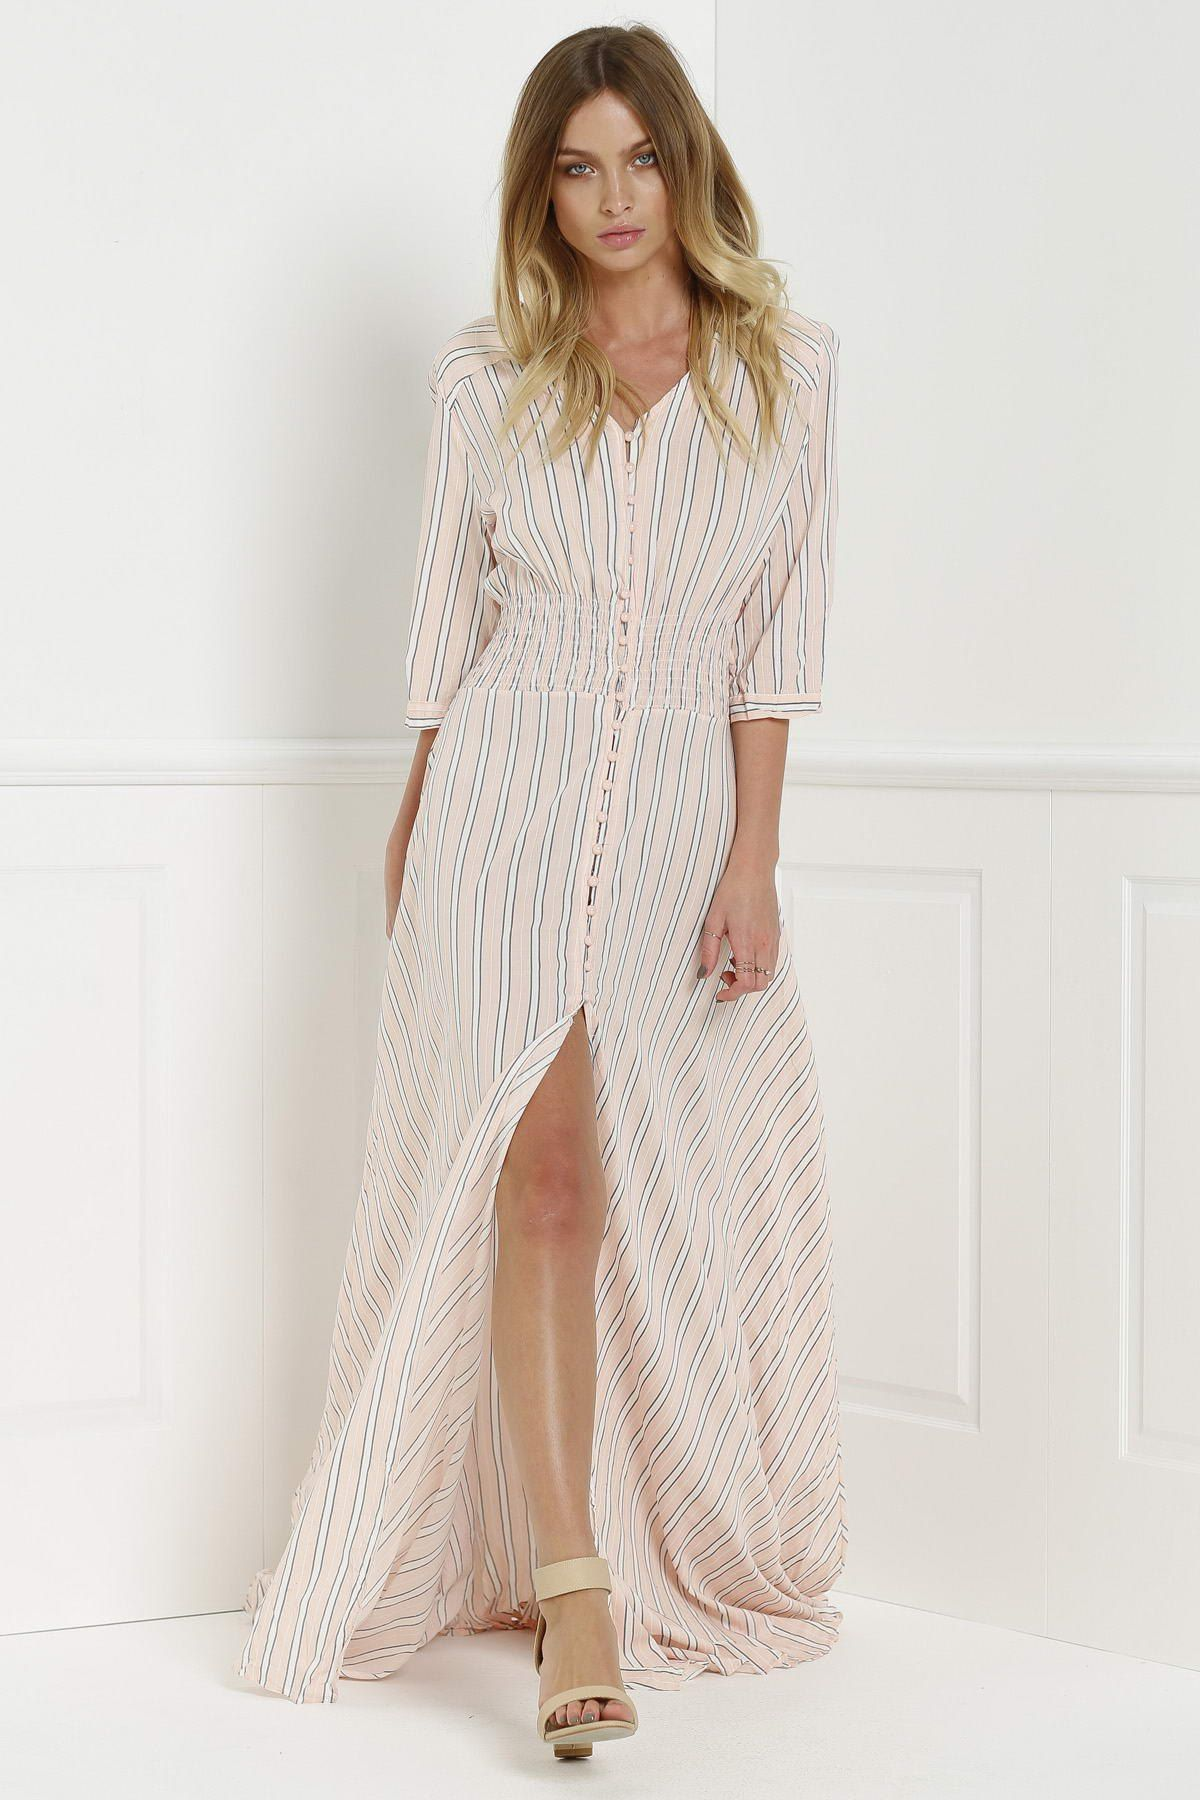 Button Front Stripe 3 4 Sleeve Maxi Dress Pink Maxi Dress With Sleeves Maxi Dress Fashion [ 1800 x 1200 Pixel ]